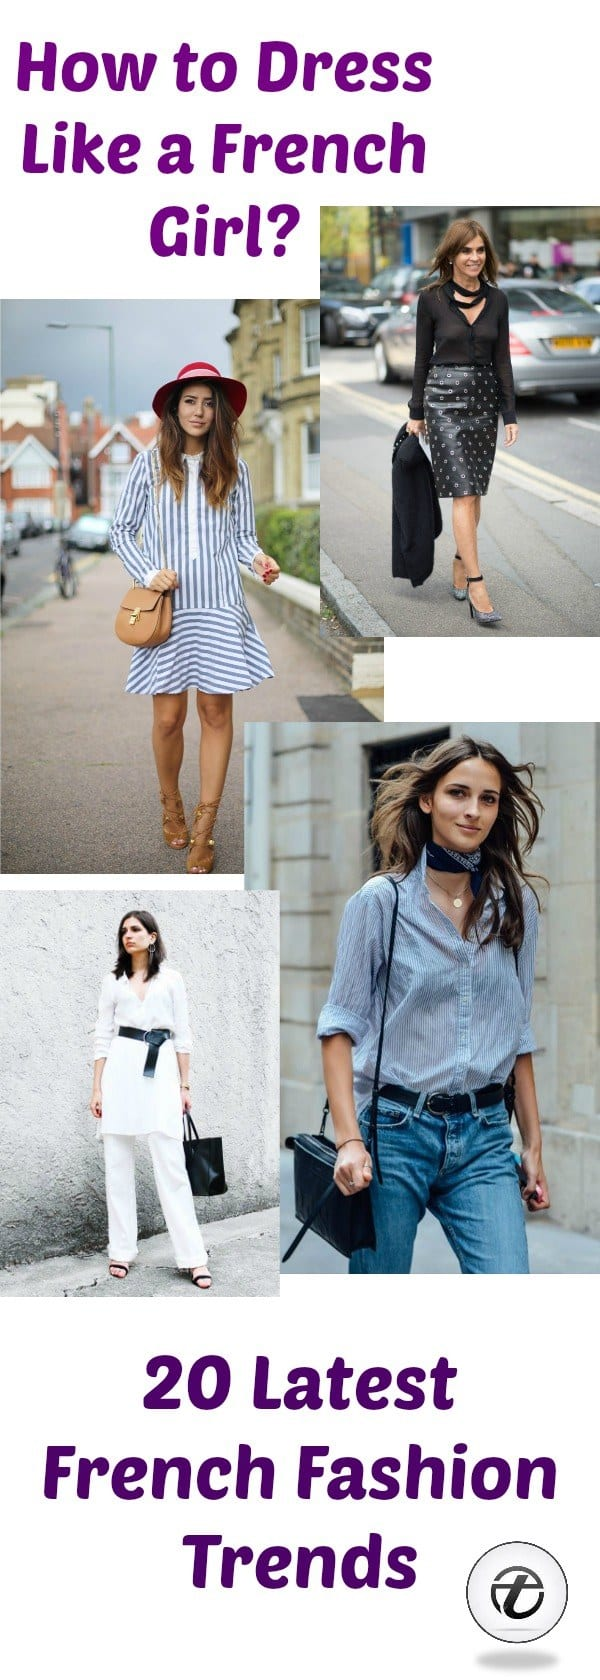 0db984bb187 Latest French Fashion Trends-20 Ways to Dress Like a French Girl